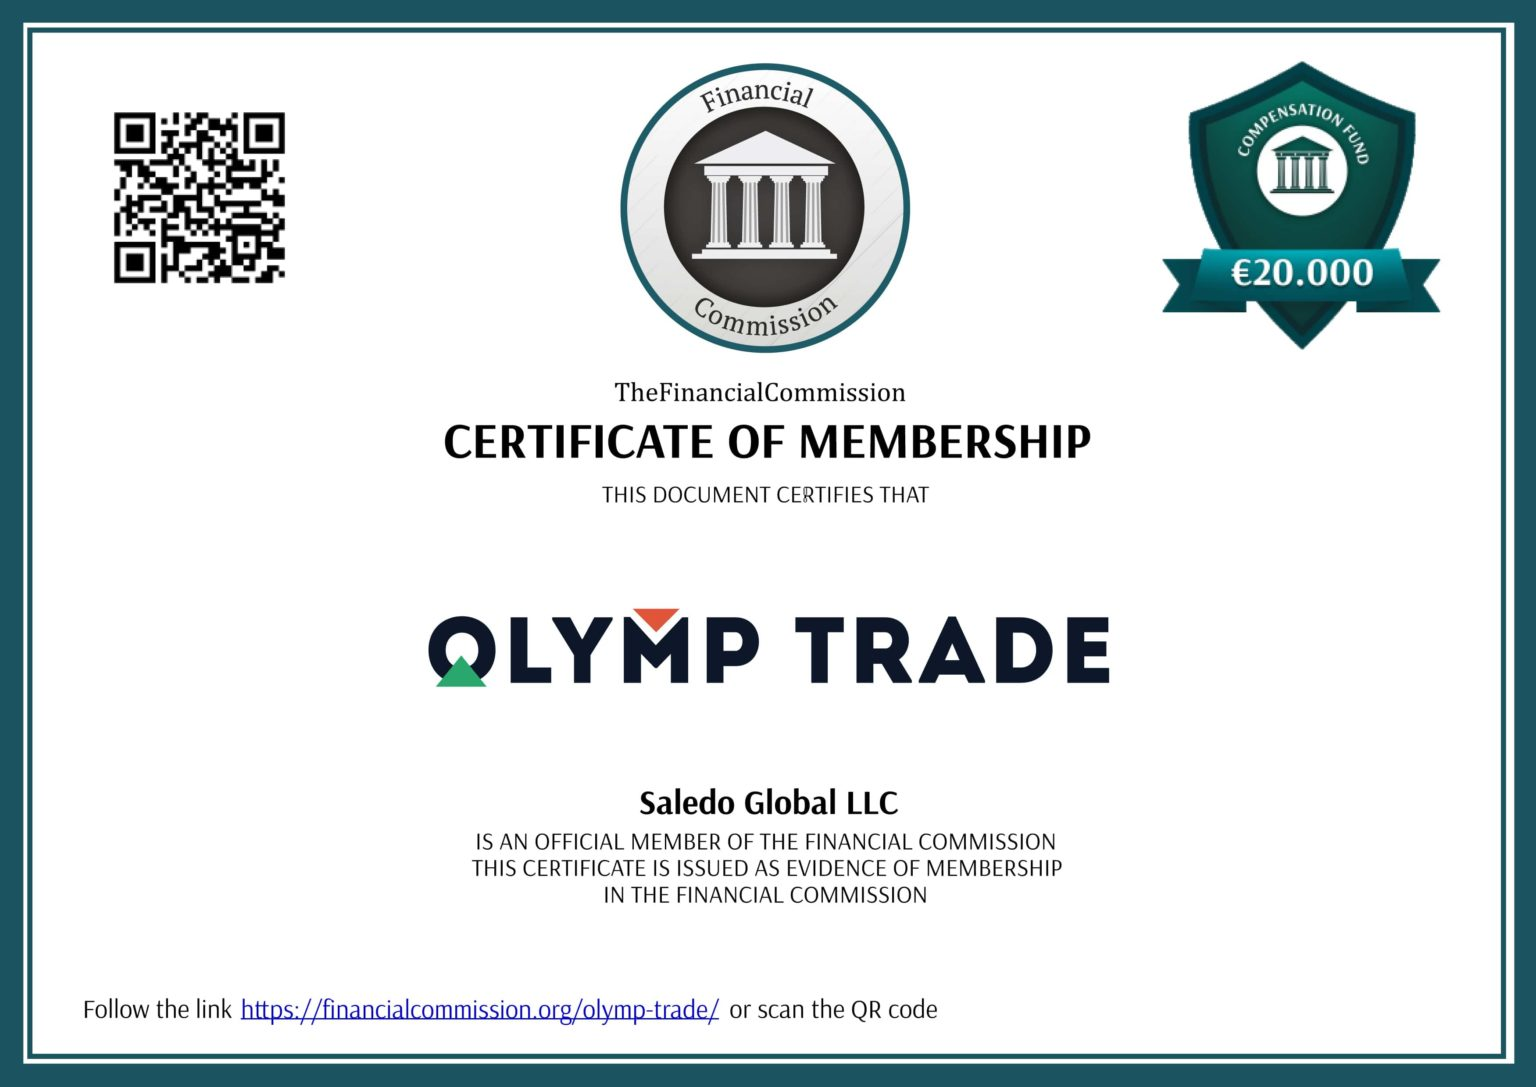 Why has My Account been Blocked on Olymp Trade? How to avoid It